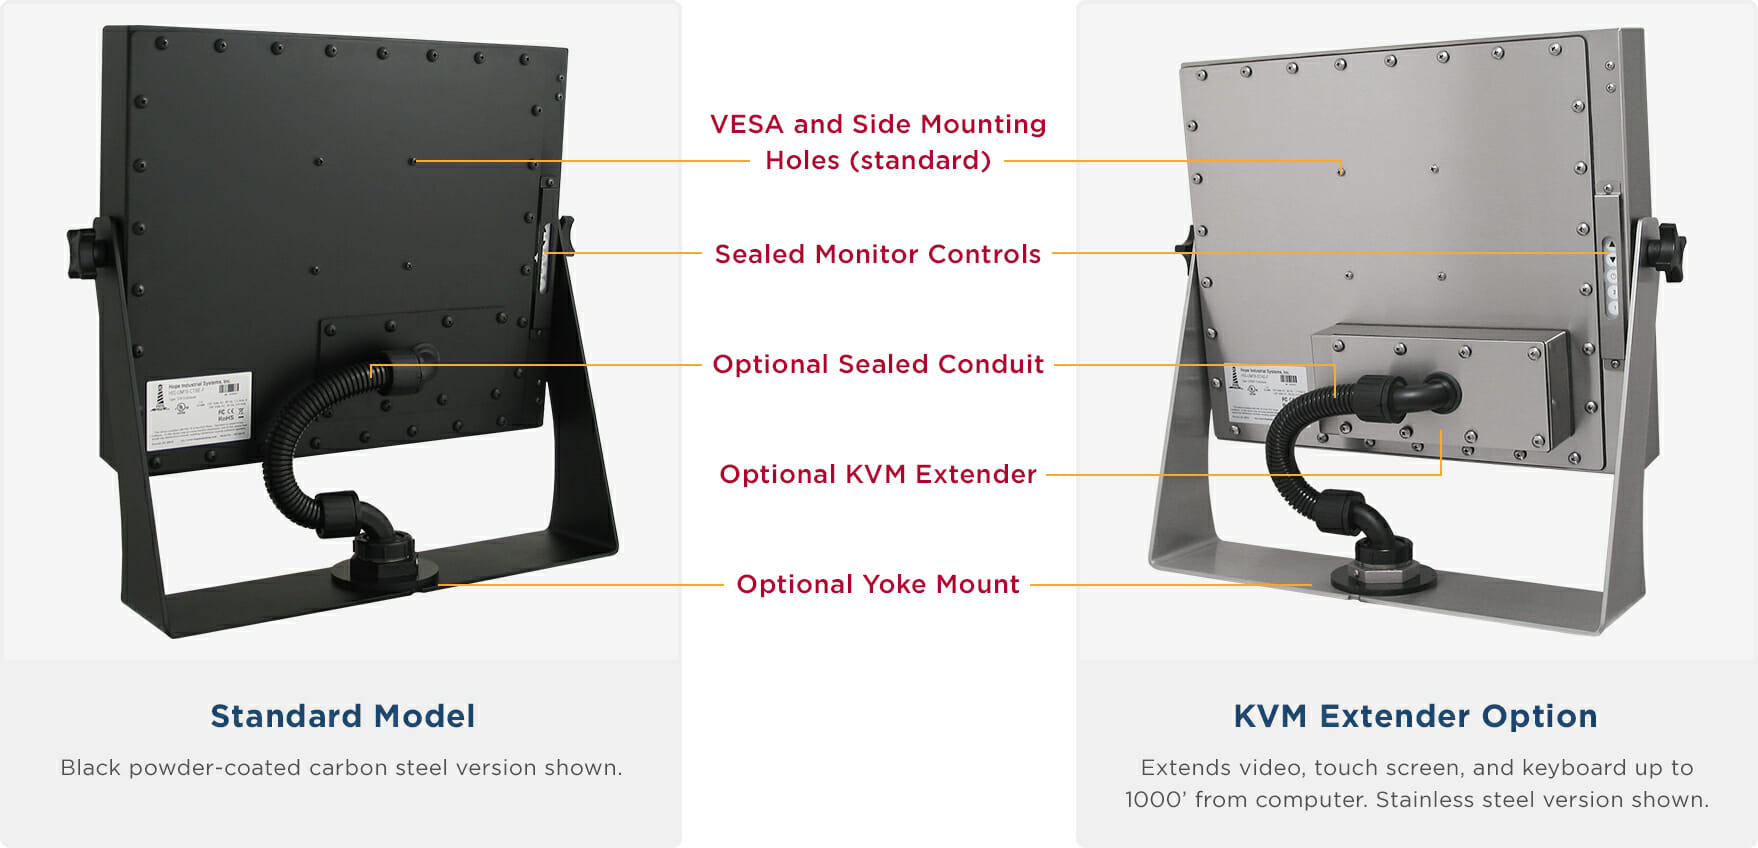 "Rear views of NEMA 4/4X Rated 19"" Universal Mount Monitors showing Industrial Enclosure features and options"